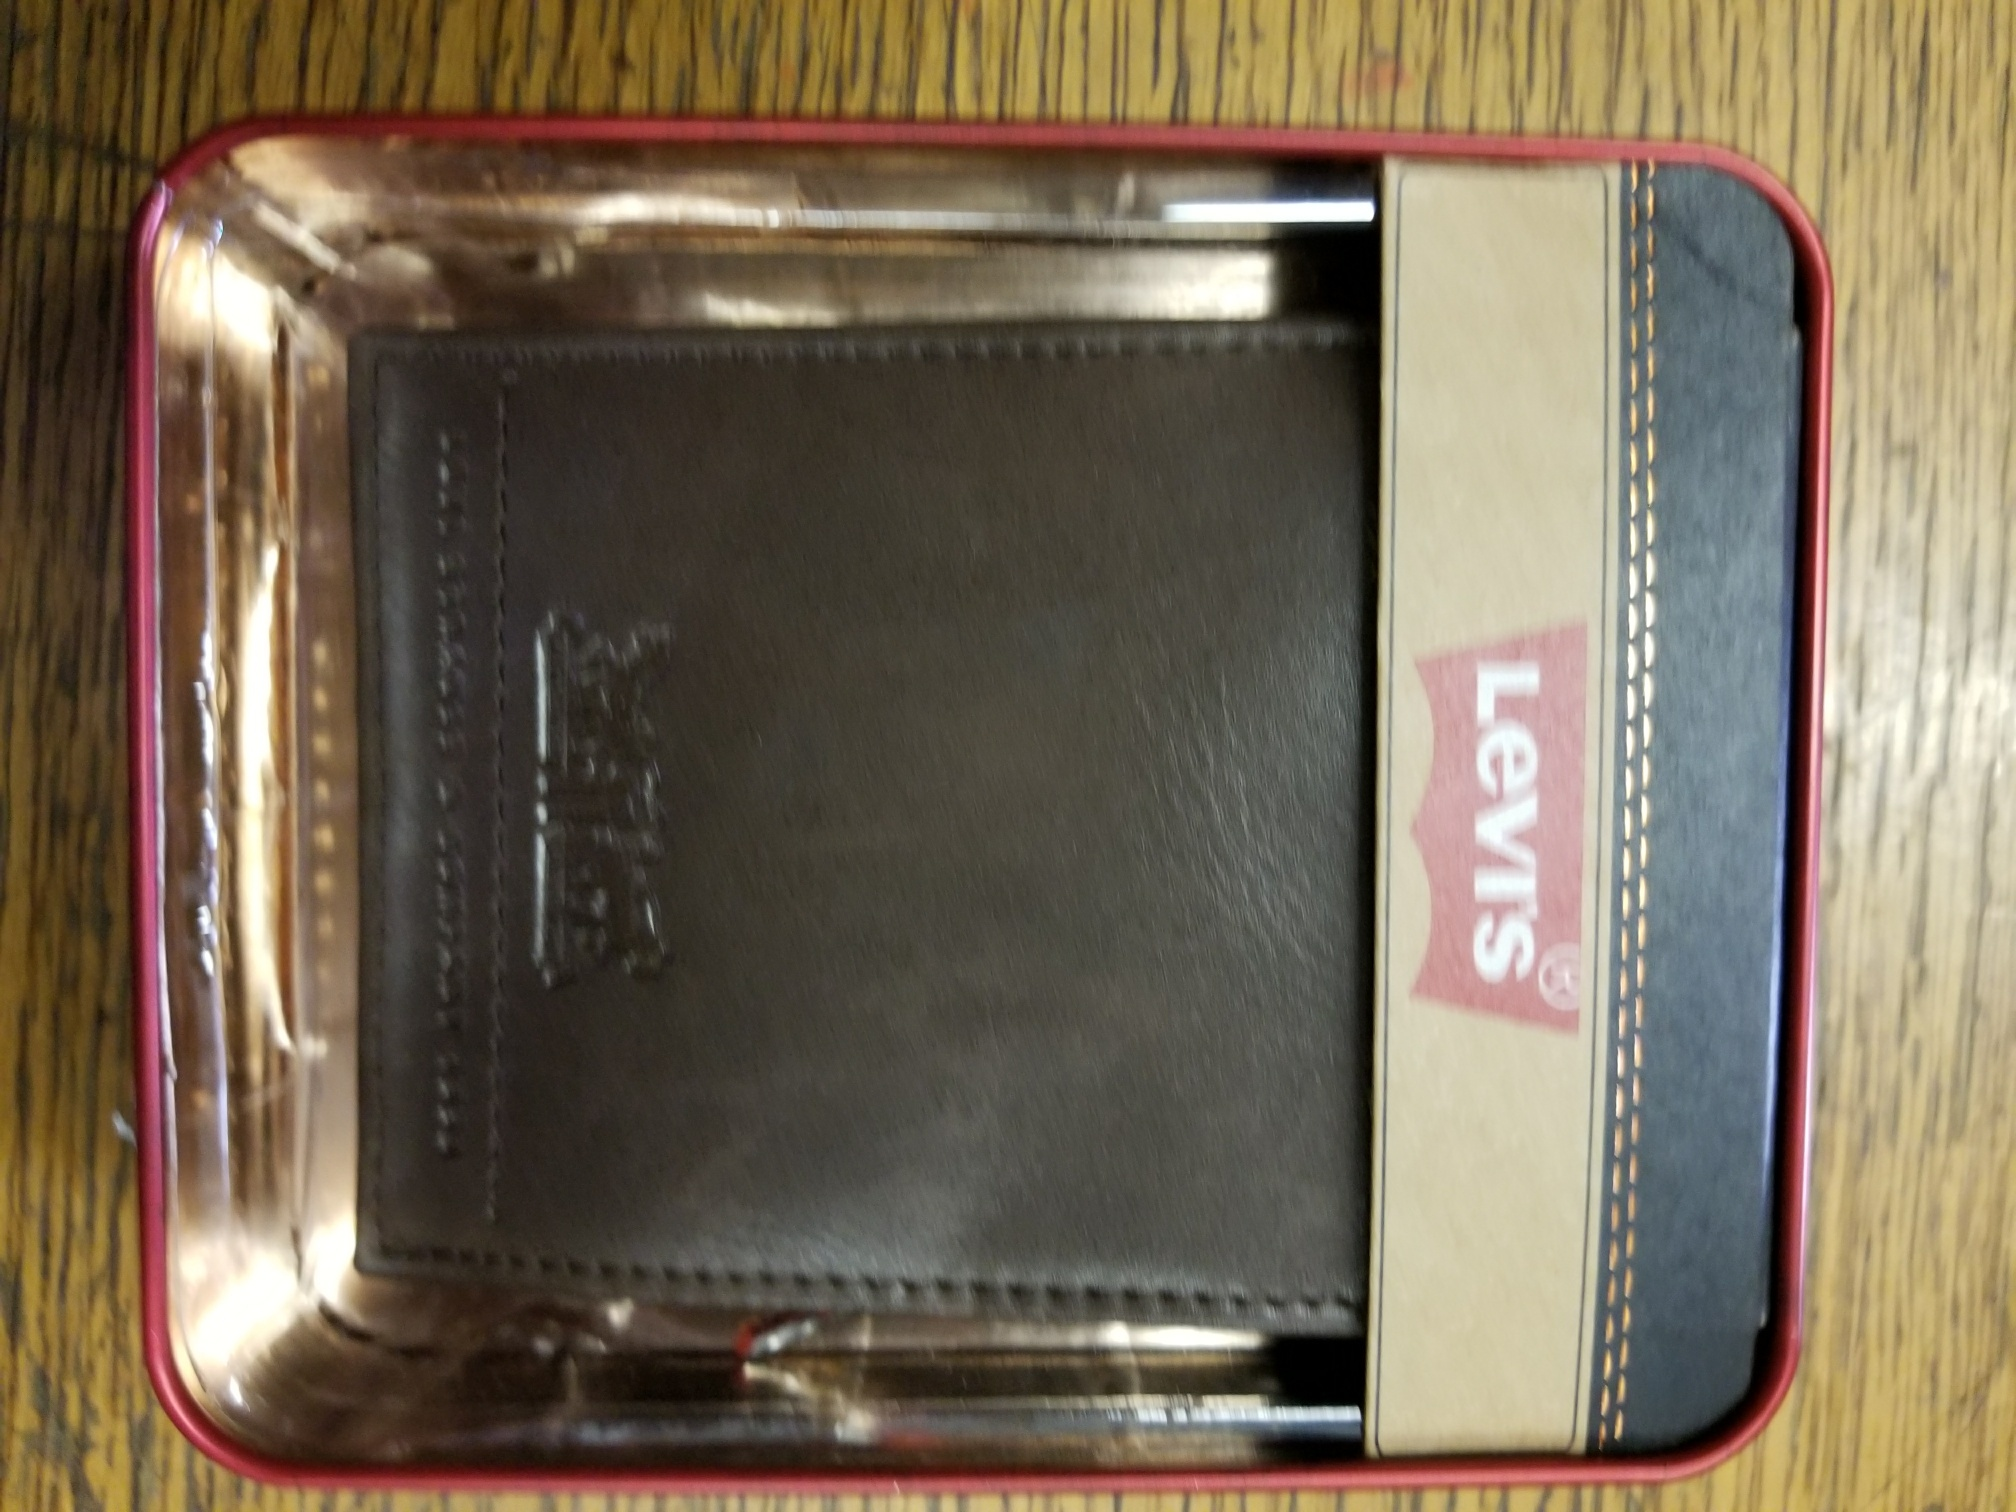 Levi's Bifold Wallet with l levi's - Brown (31LP2206)